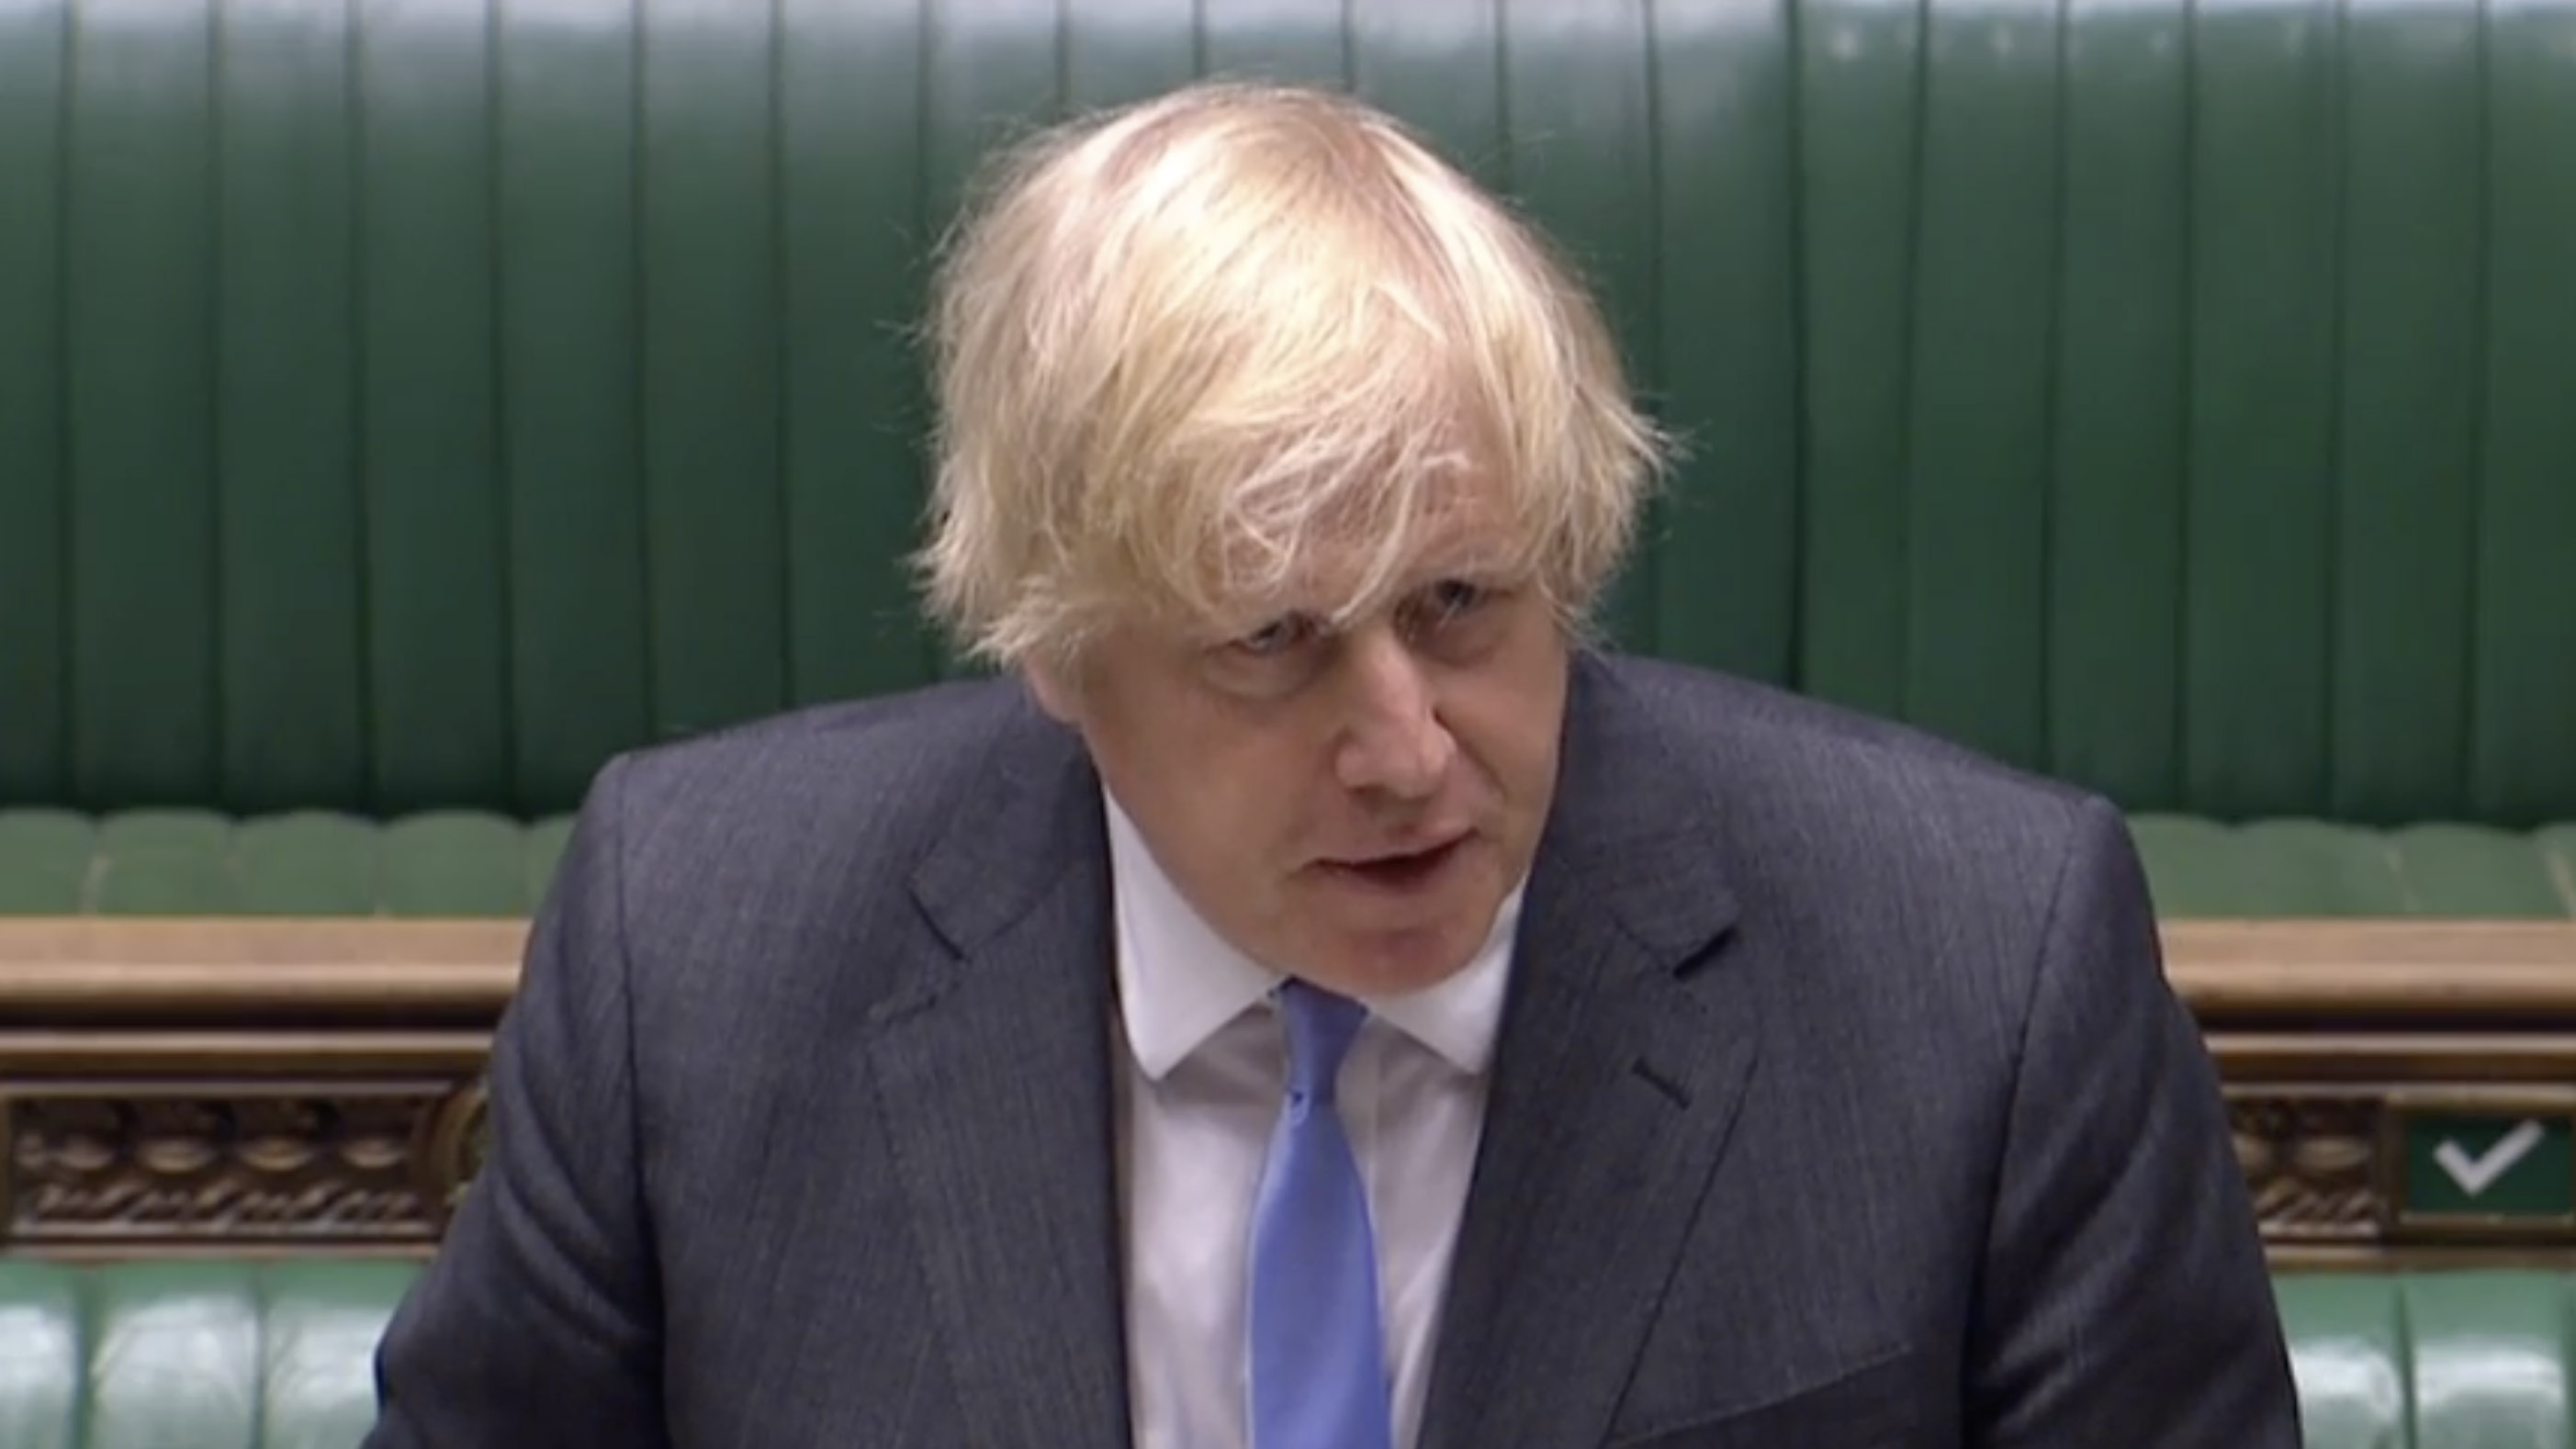 Britain's Prime Minister Boris Johnson speaks in the House of Commons in London, on Tuesday, June 23.